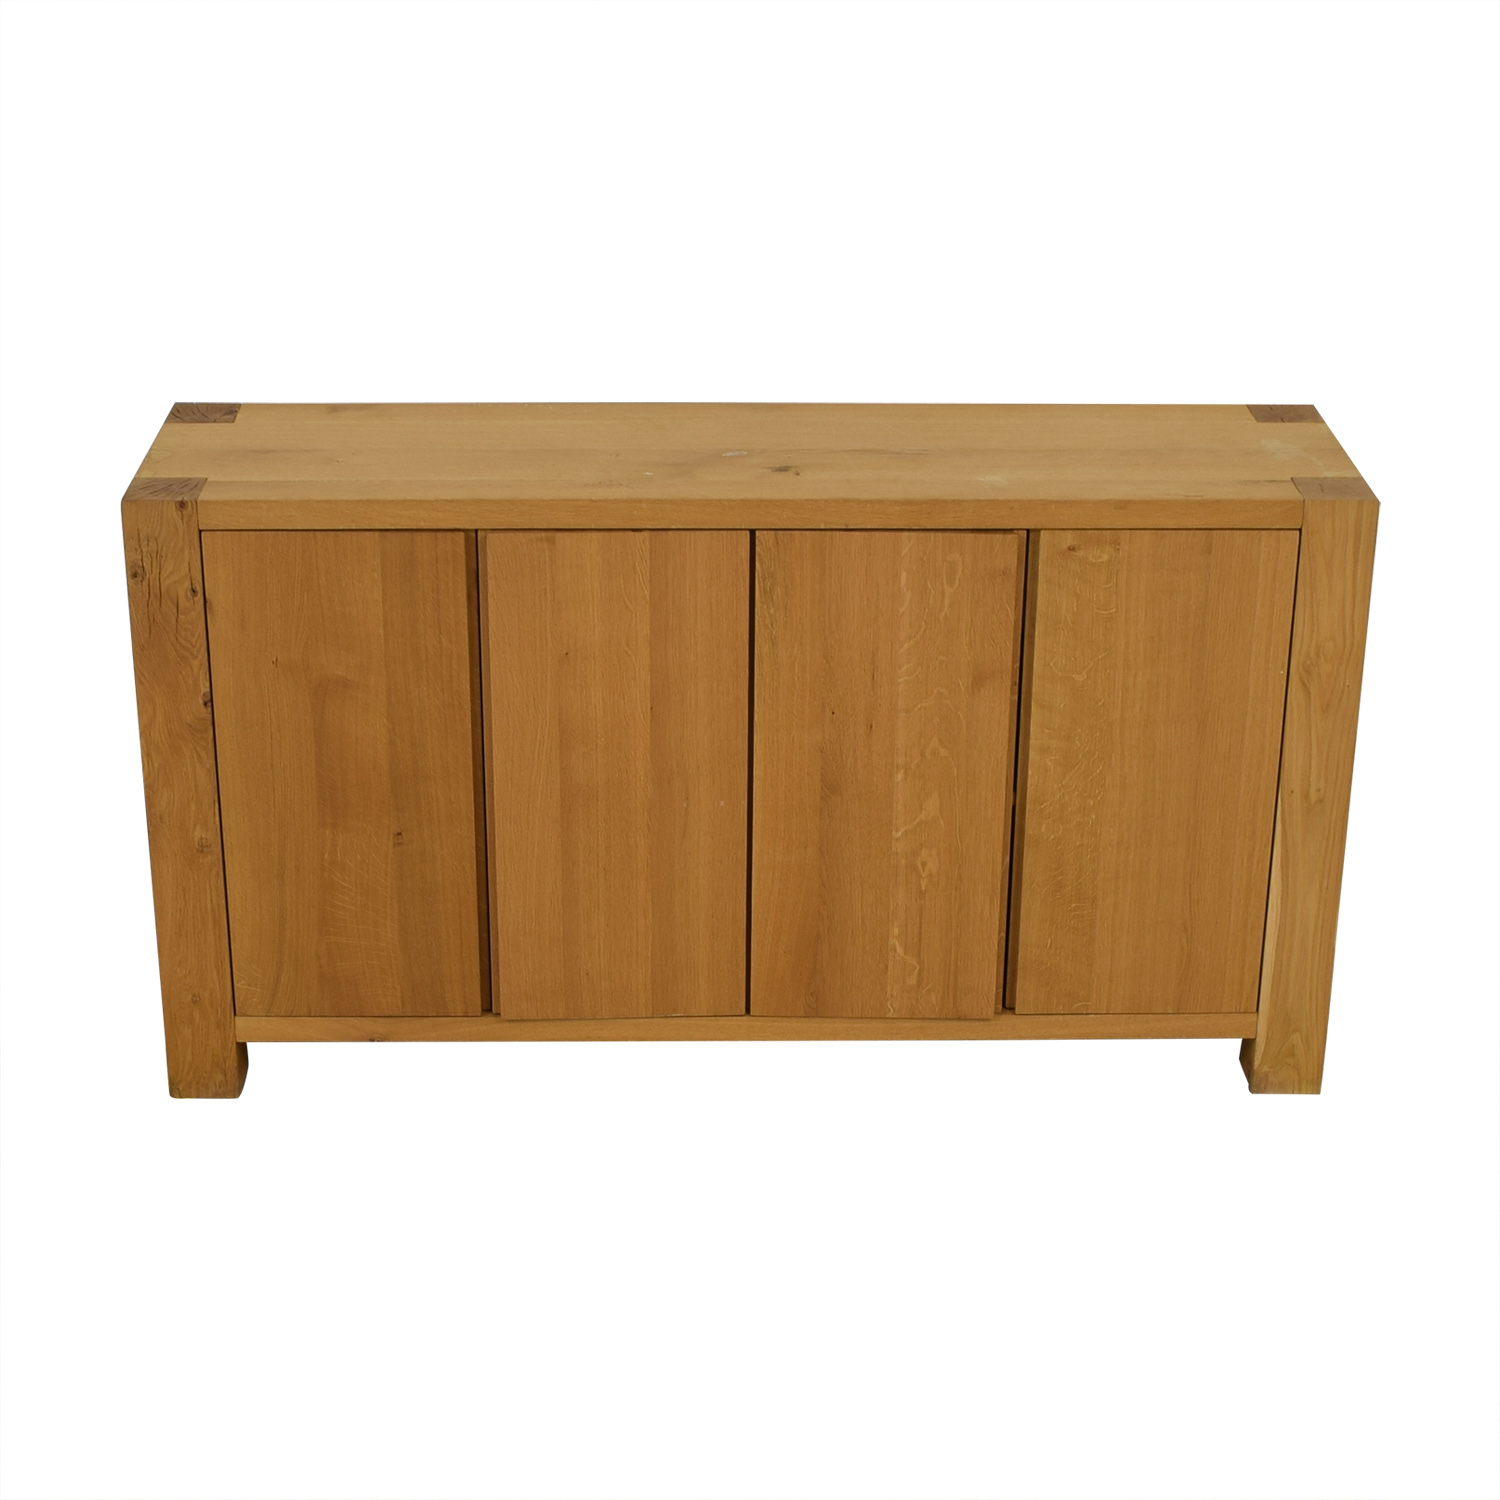 buy Crate & Barrel Crate & Barrel Big Sur Sideboard online